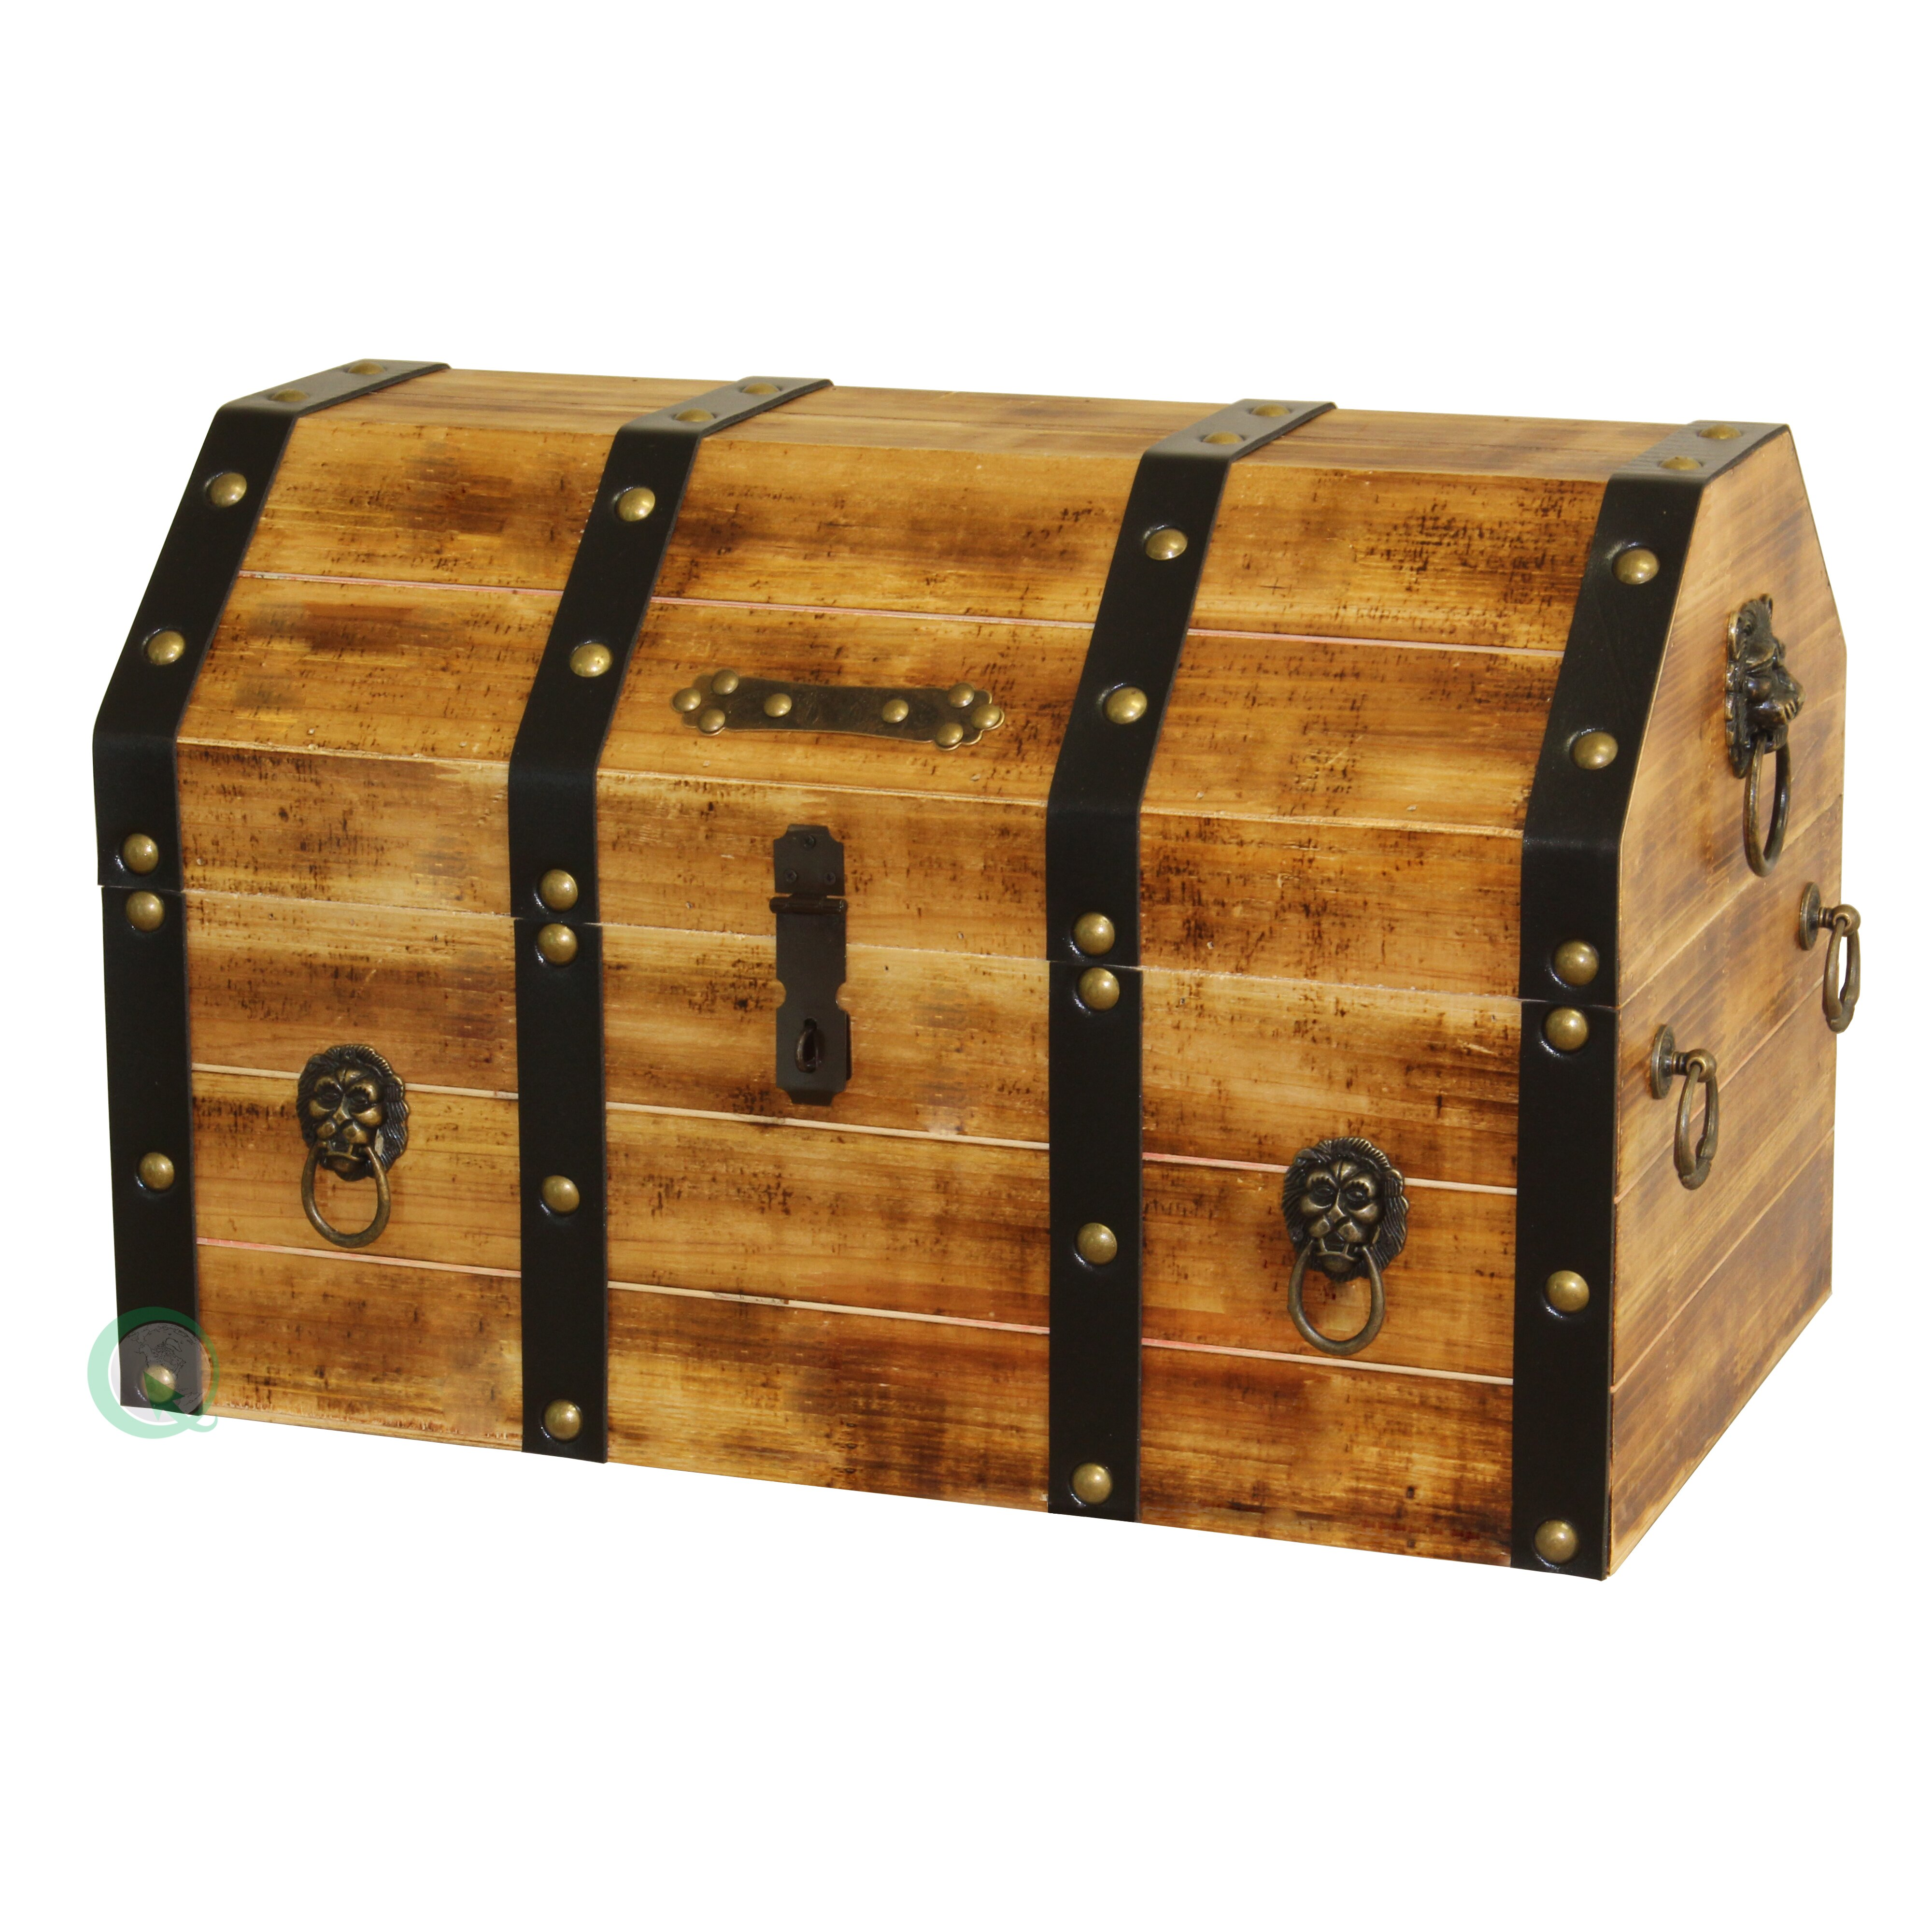 Lockable Bedroom Furniture Quickway Imports Large Wooden Pirate Lockable Trunk With Lion